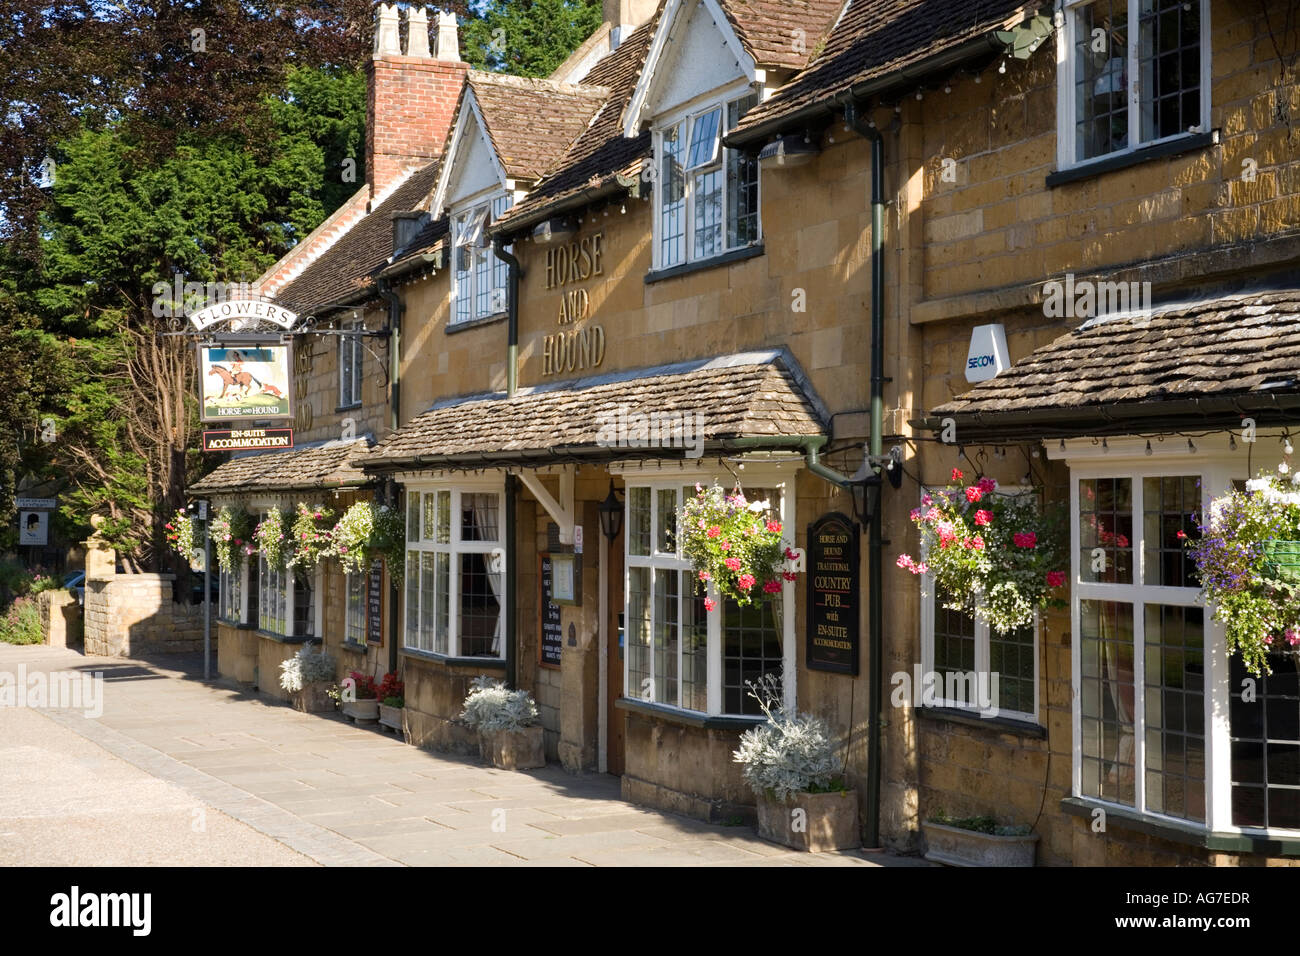 The Horse and Hound country pub in the Cotswold village of Broadway, Worcestershire - Stock Image